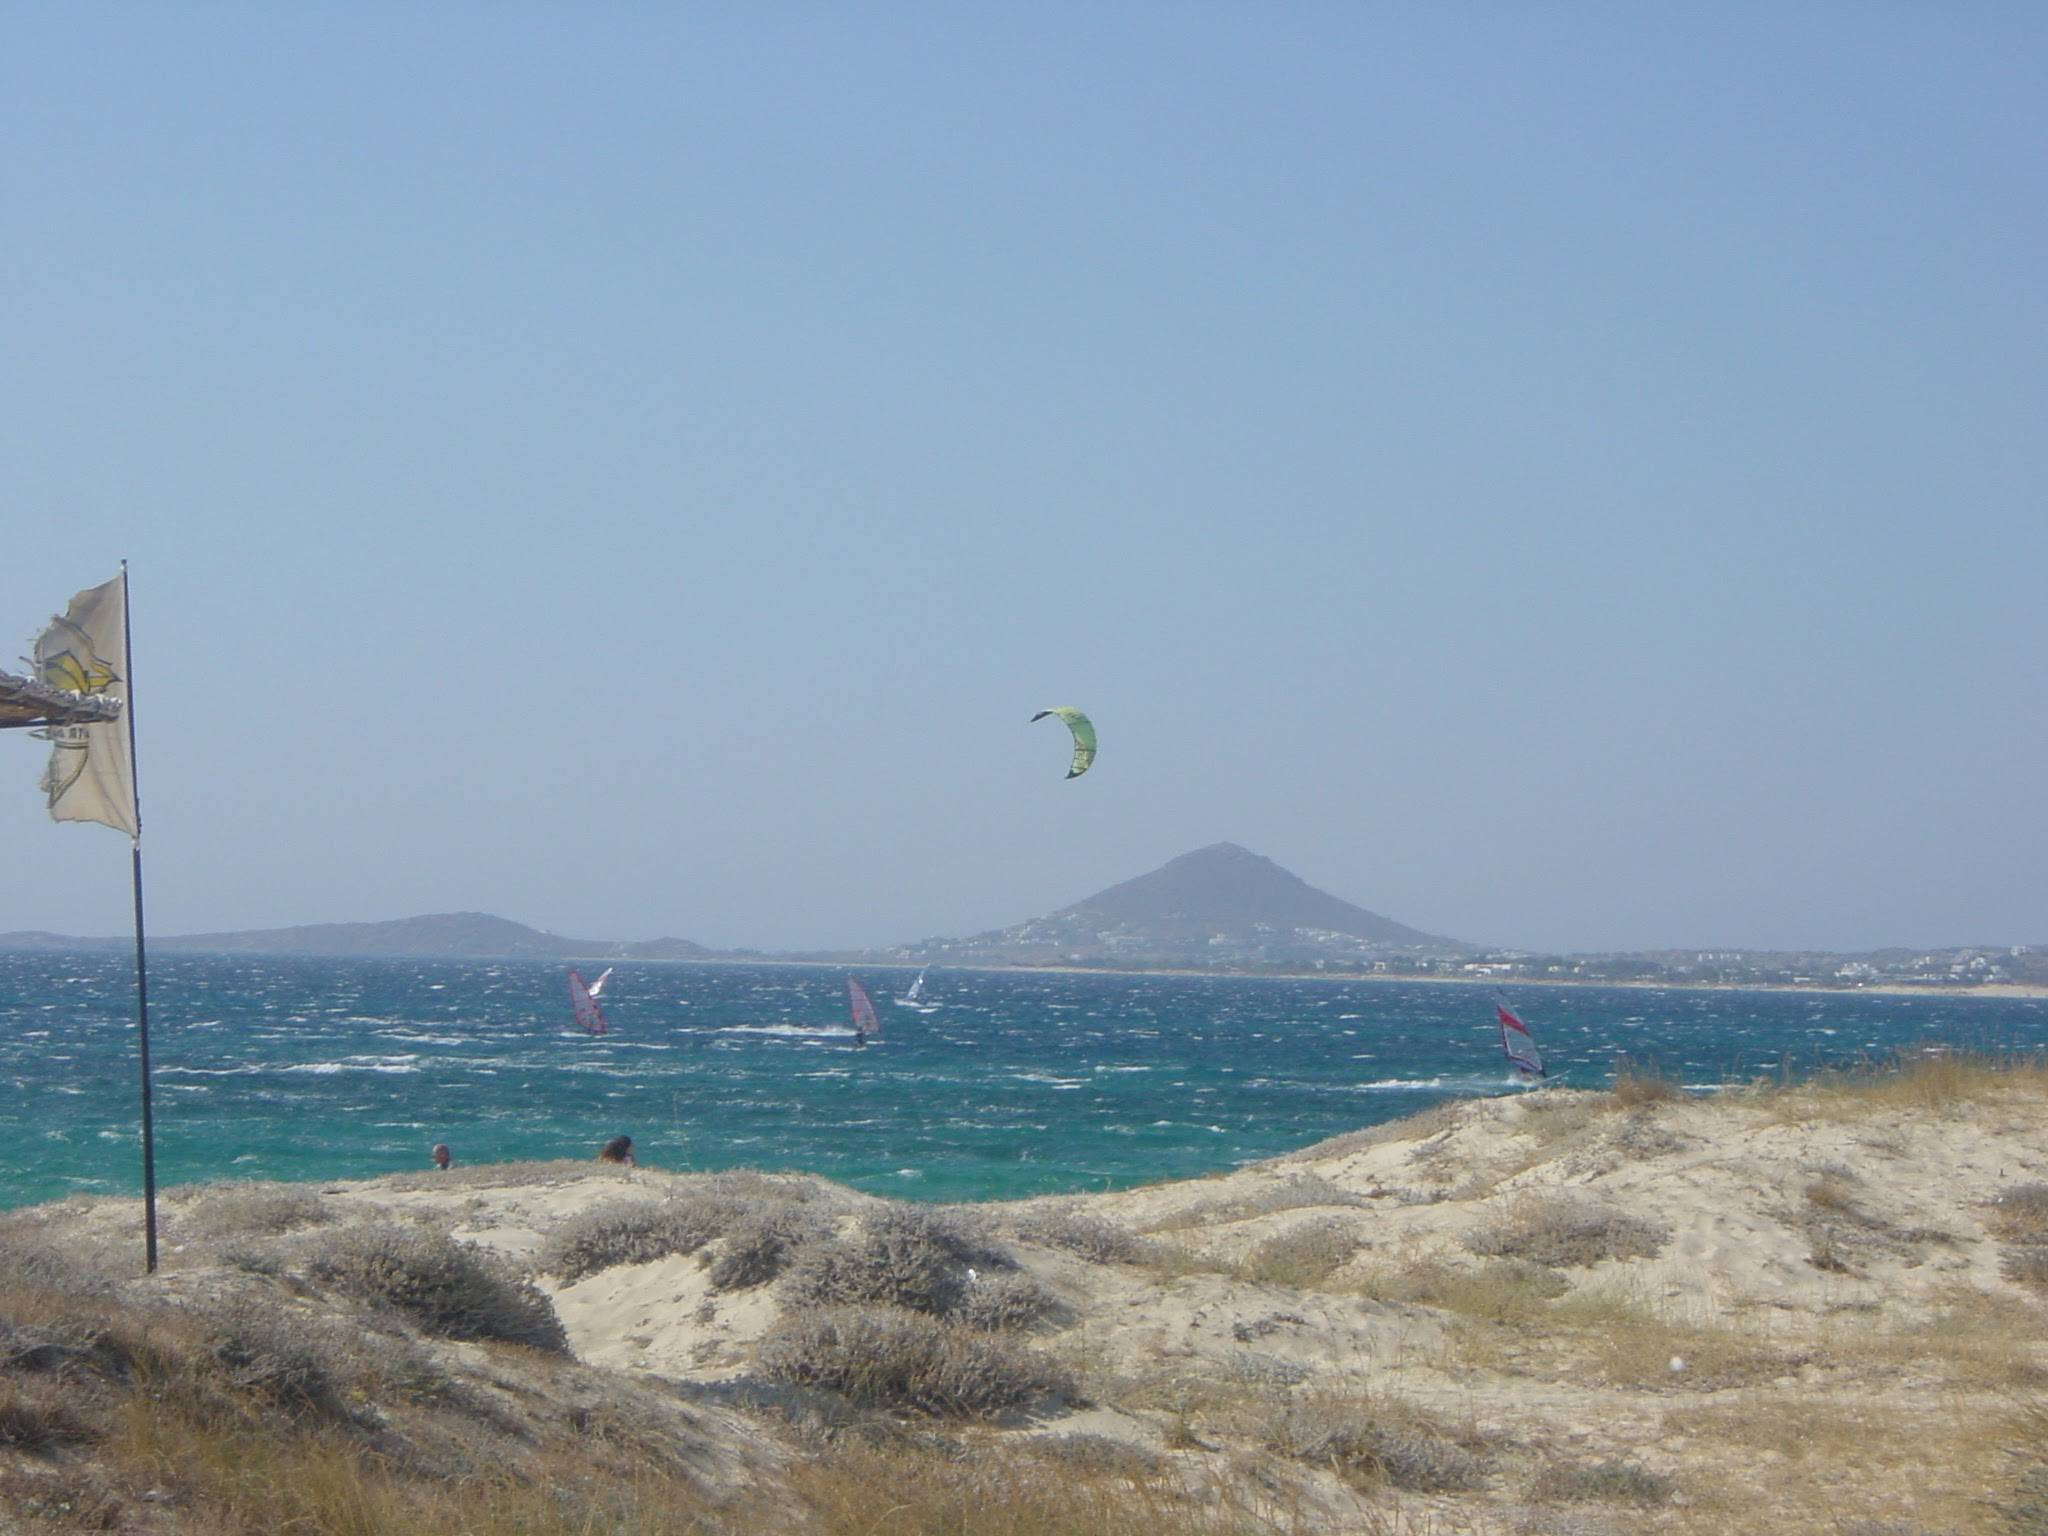 Photo 3: Naxos sous le vent du Meltem